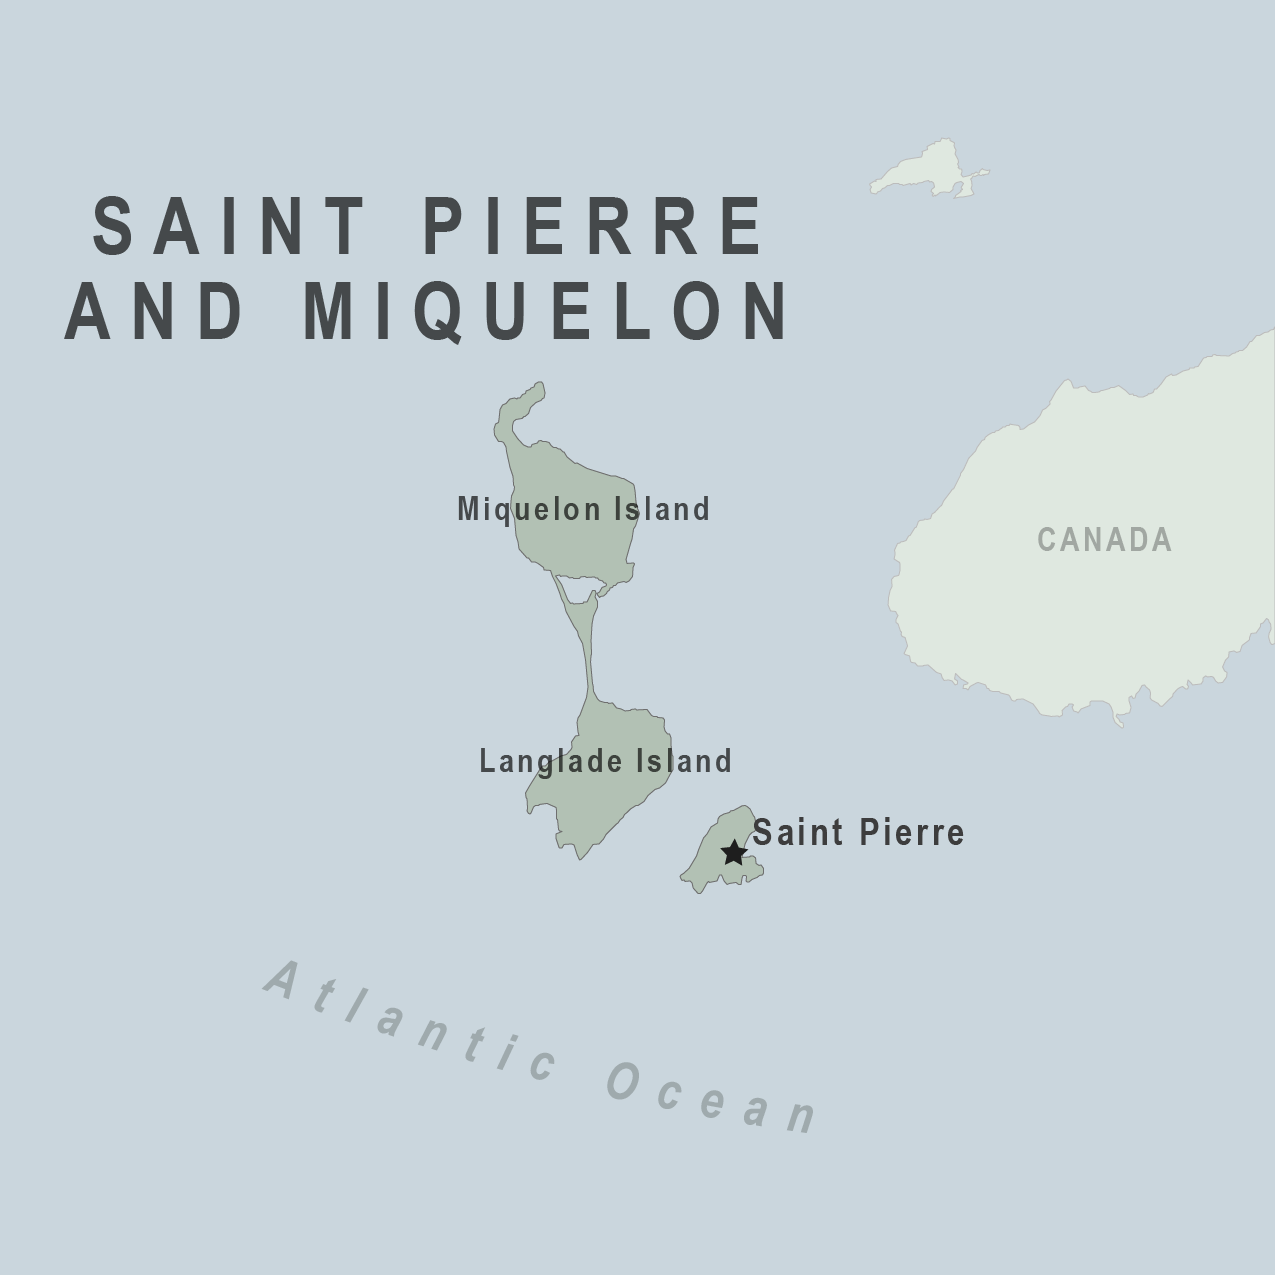 Health Information for Travelers to Saint Pierre and Miquelon